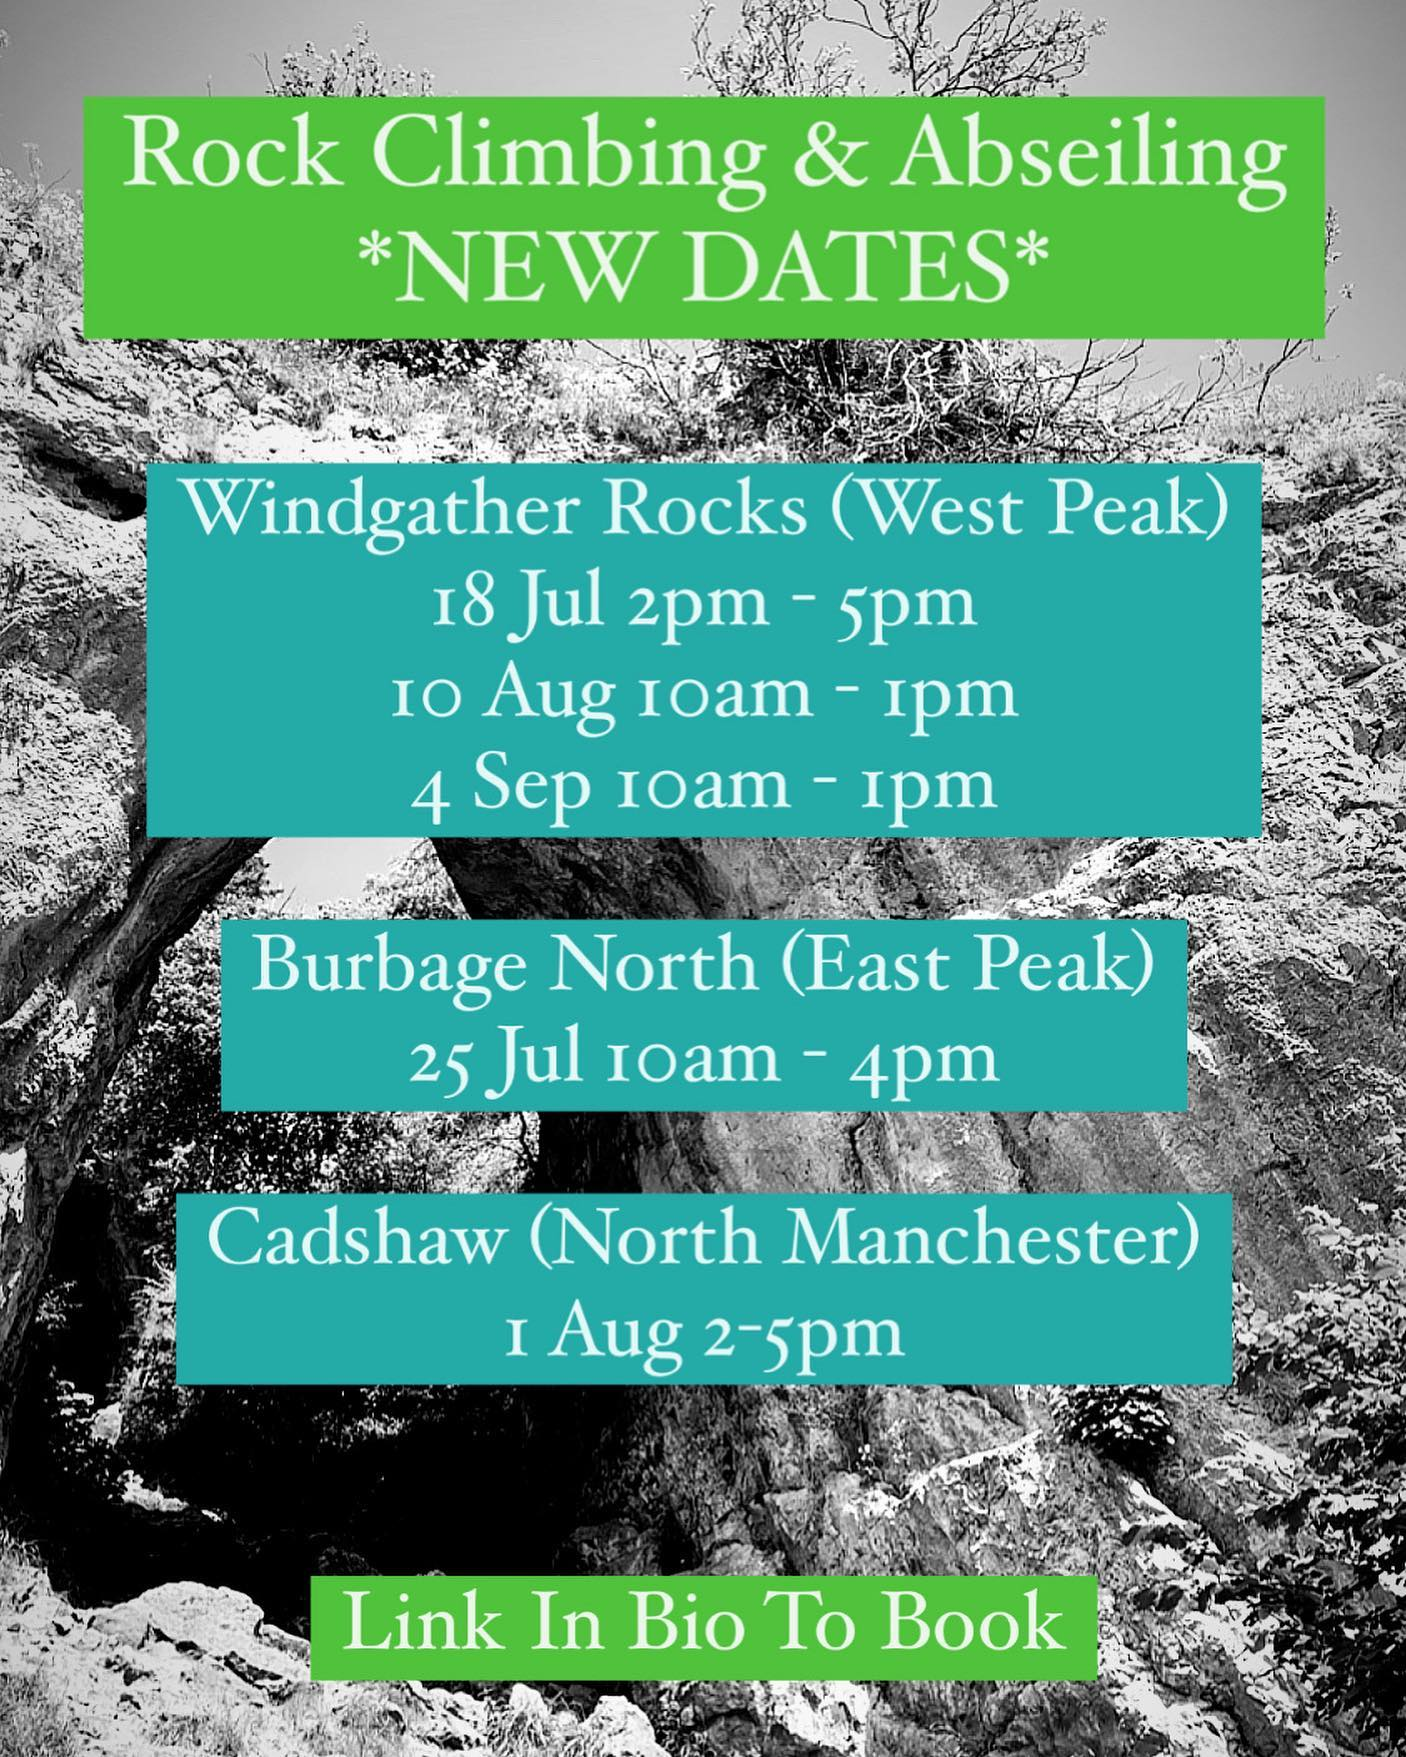 Join our friendly, qualified instructors for these sessions where you'll learn the basics of ropework, before climbing under their supervision. Then you'll need to be brave and challenge yourself to abseil back down (or walk down the path instead if you prefer!). Suitable for all from 10+, we hope to see you here!  More info and booking at www.wilderness-development.com, link in our bio 🧗♀️⛰🧗♀️ . . . #wildernessdevelopment #smallbusiness #rockclimbing #climbing #scrambling #abseiling #trysomethingnew #peakdistrict #peakdistrictnationalpark #peakdistrictclimbing #mountainsfellsandhikes #roamtheuk #outdoorpursuits #outdooradventures #outdooractivities #nationalparksuk #booknow